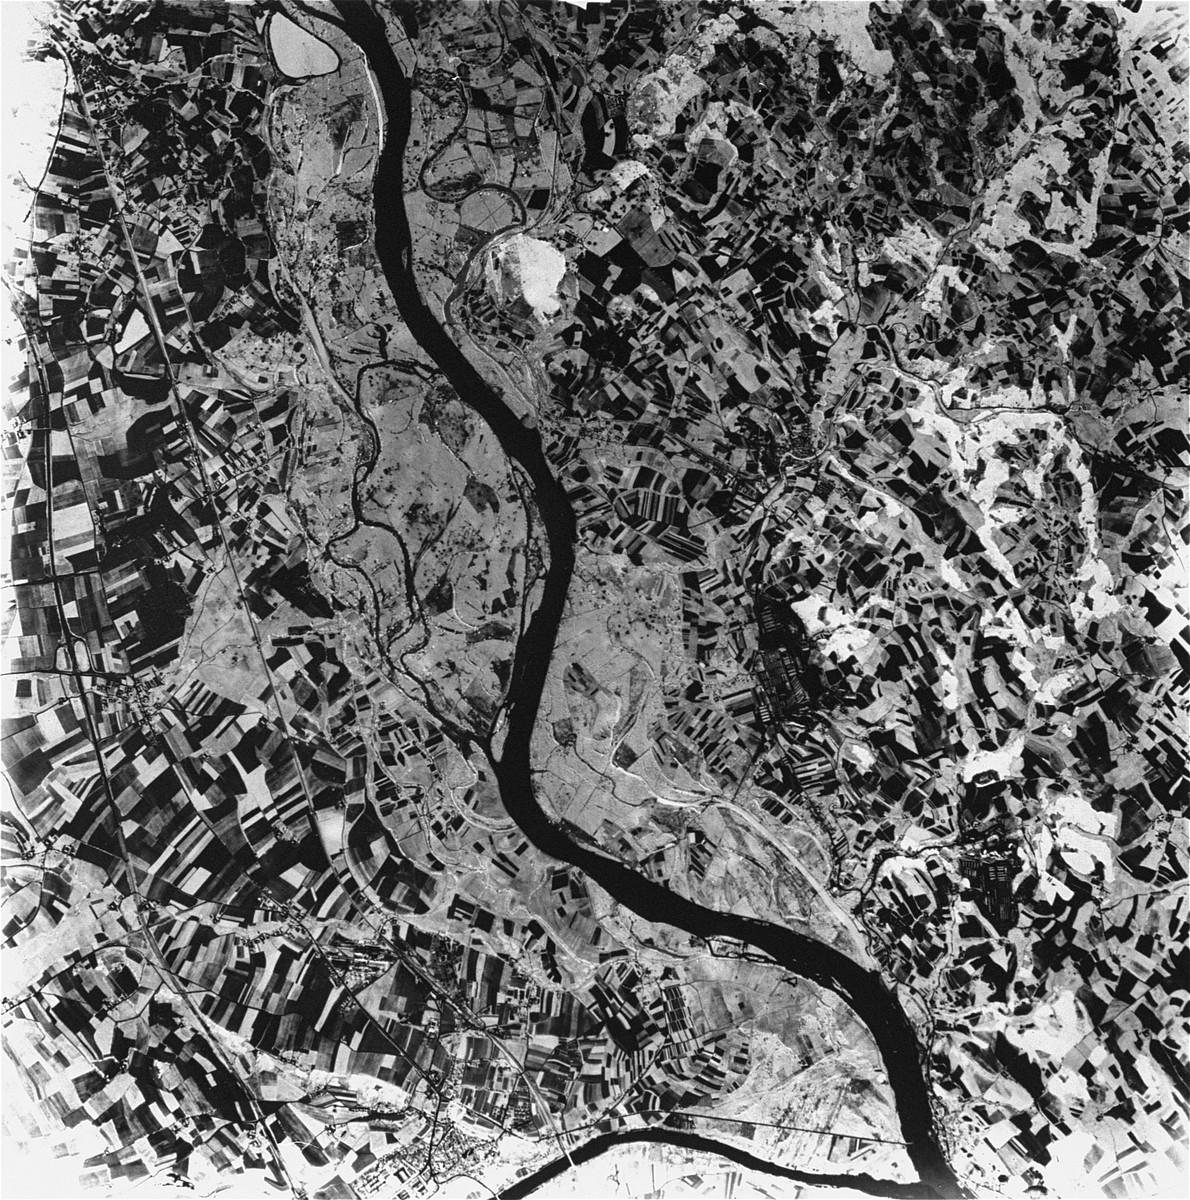 An aerial view of the Mauthausen main camp and the sub-camp of Gusen. [Oversized Photo]  Gusen is the larger camp in the center of the image.